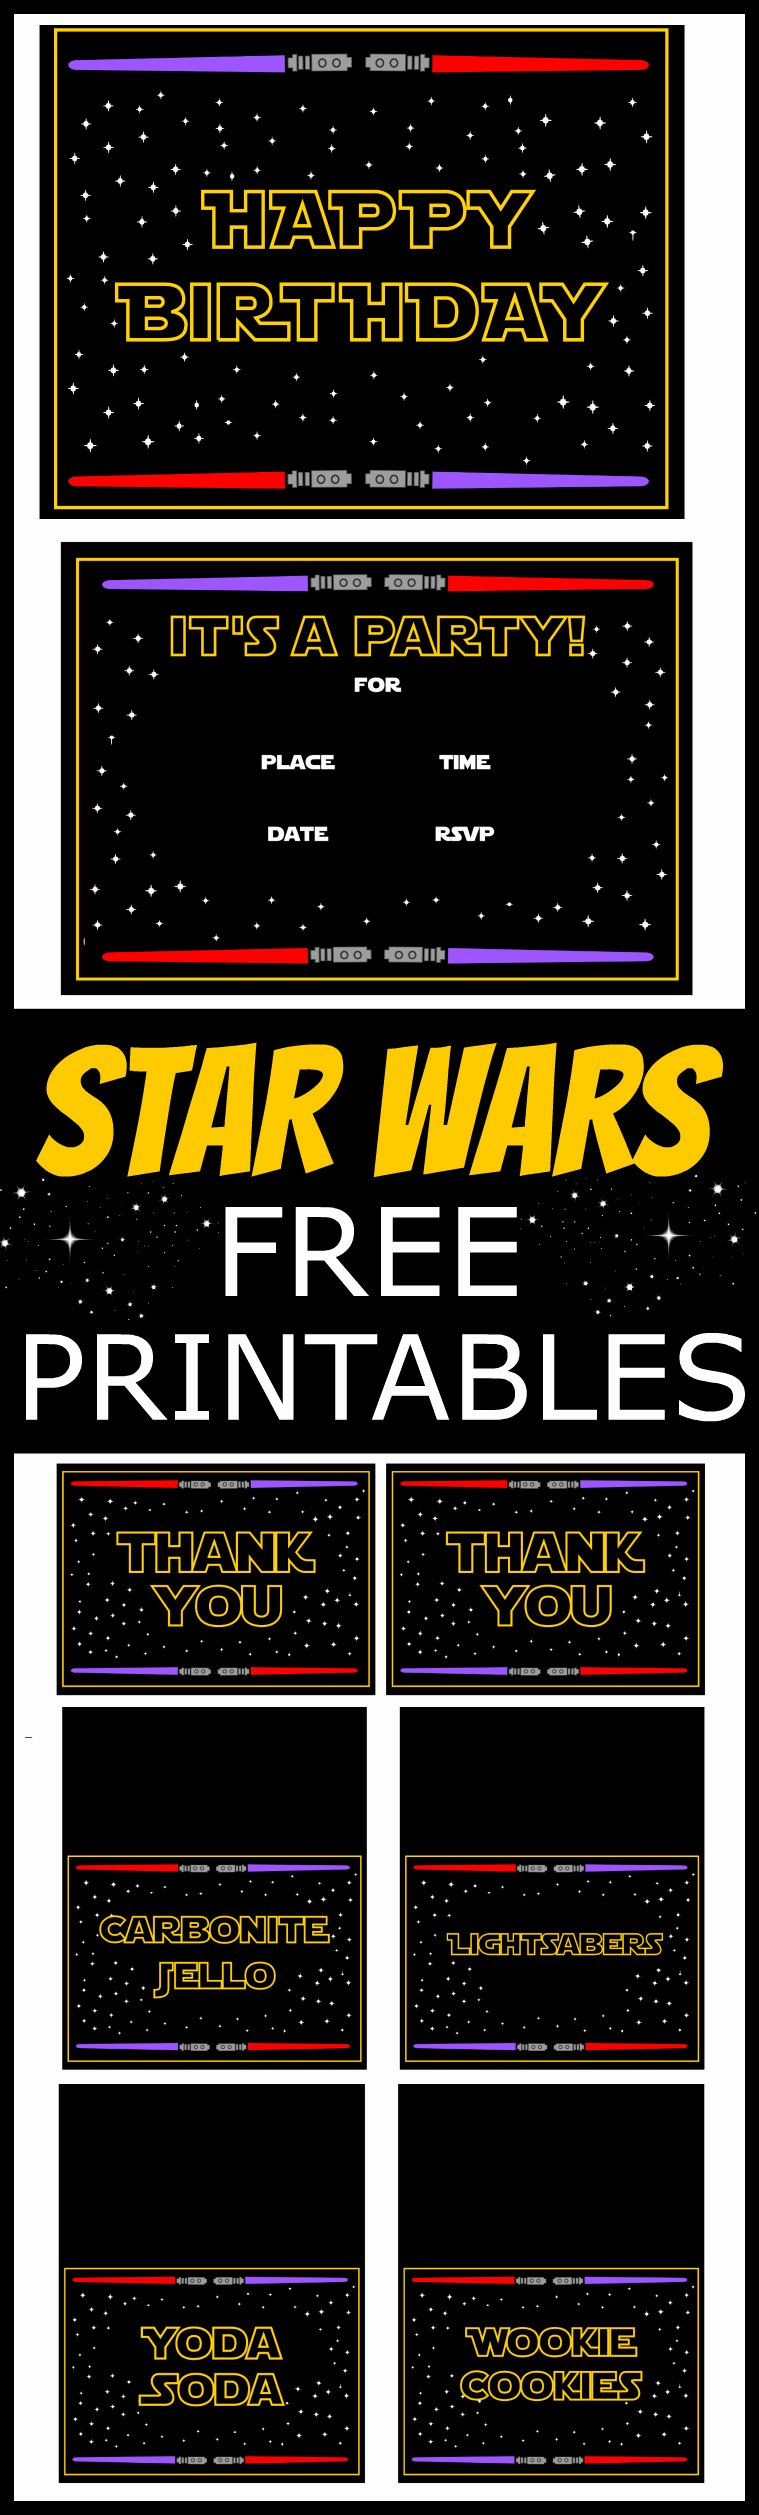 Star Wars Printable Birthday Invitations Elegant Star Wars Free Printables